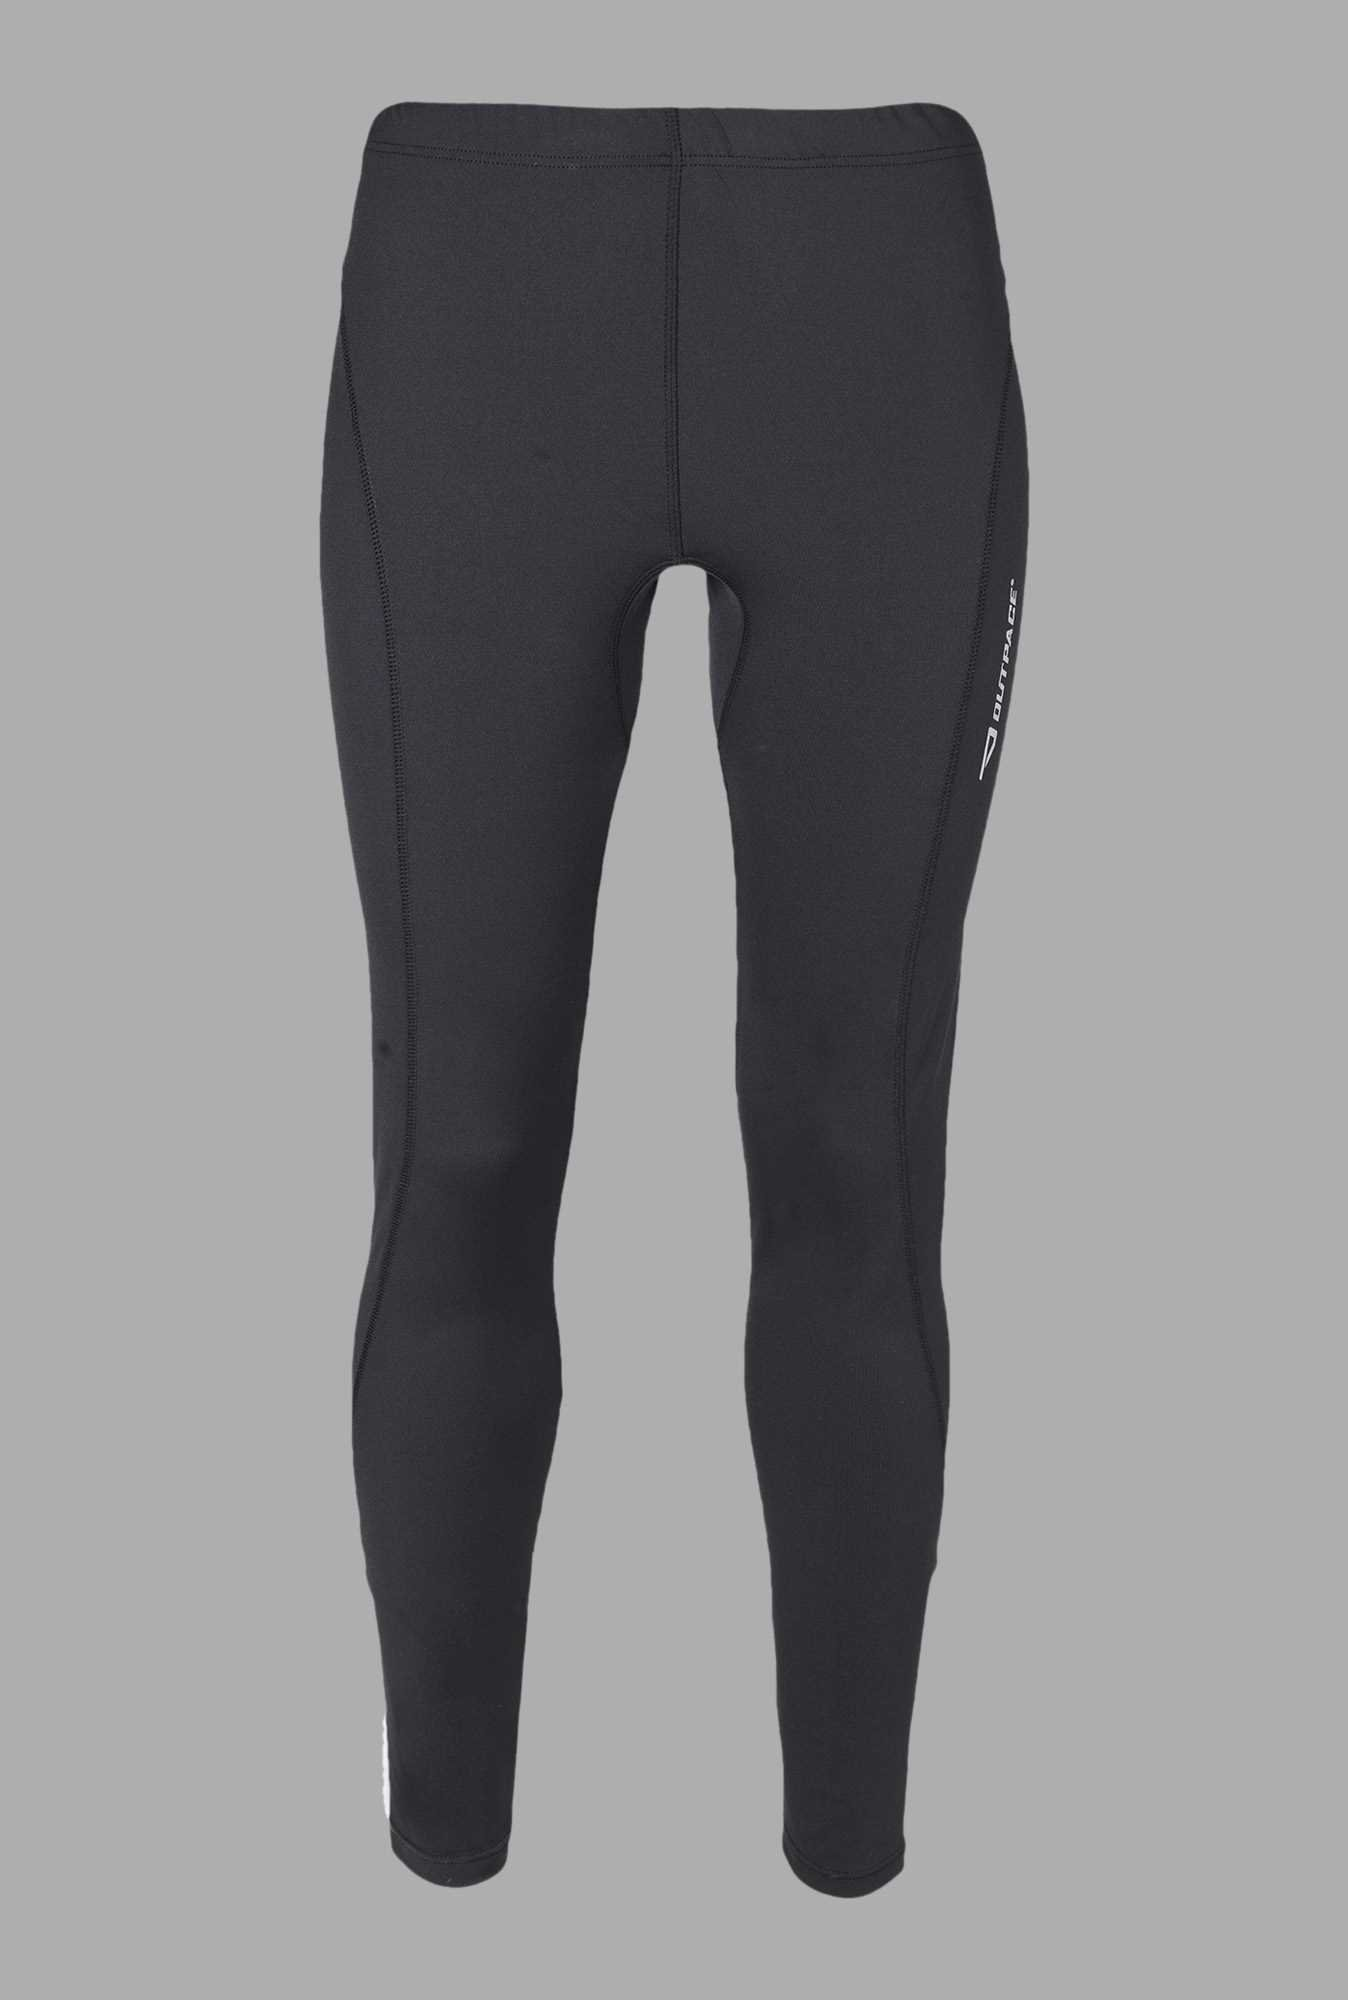 Outpace Black Running Track Pants